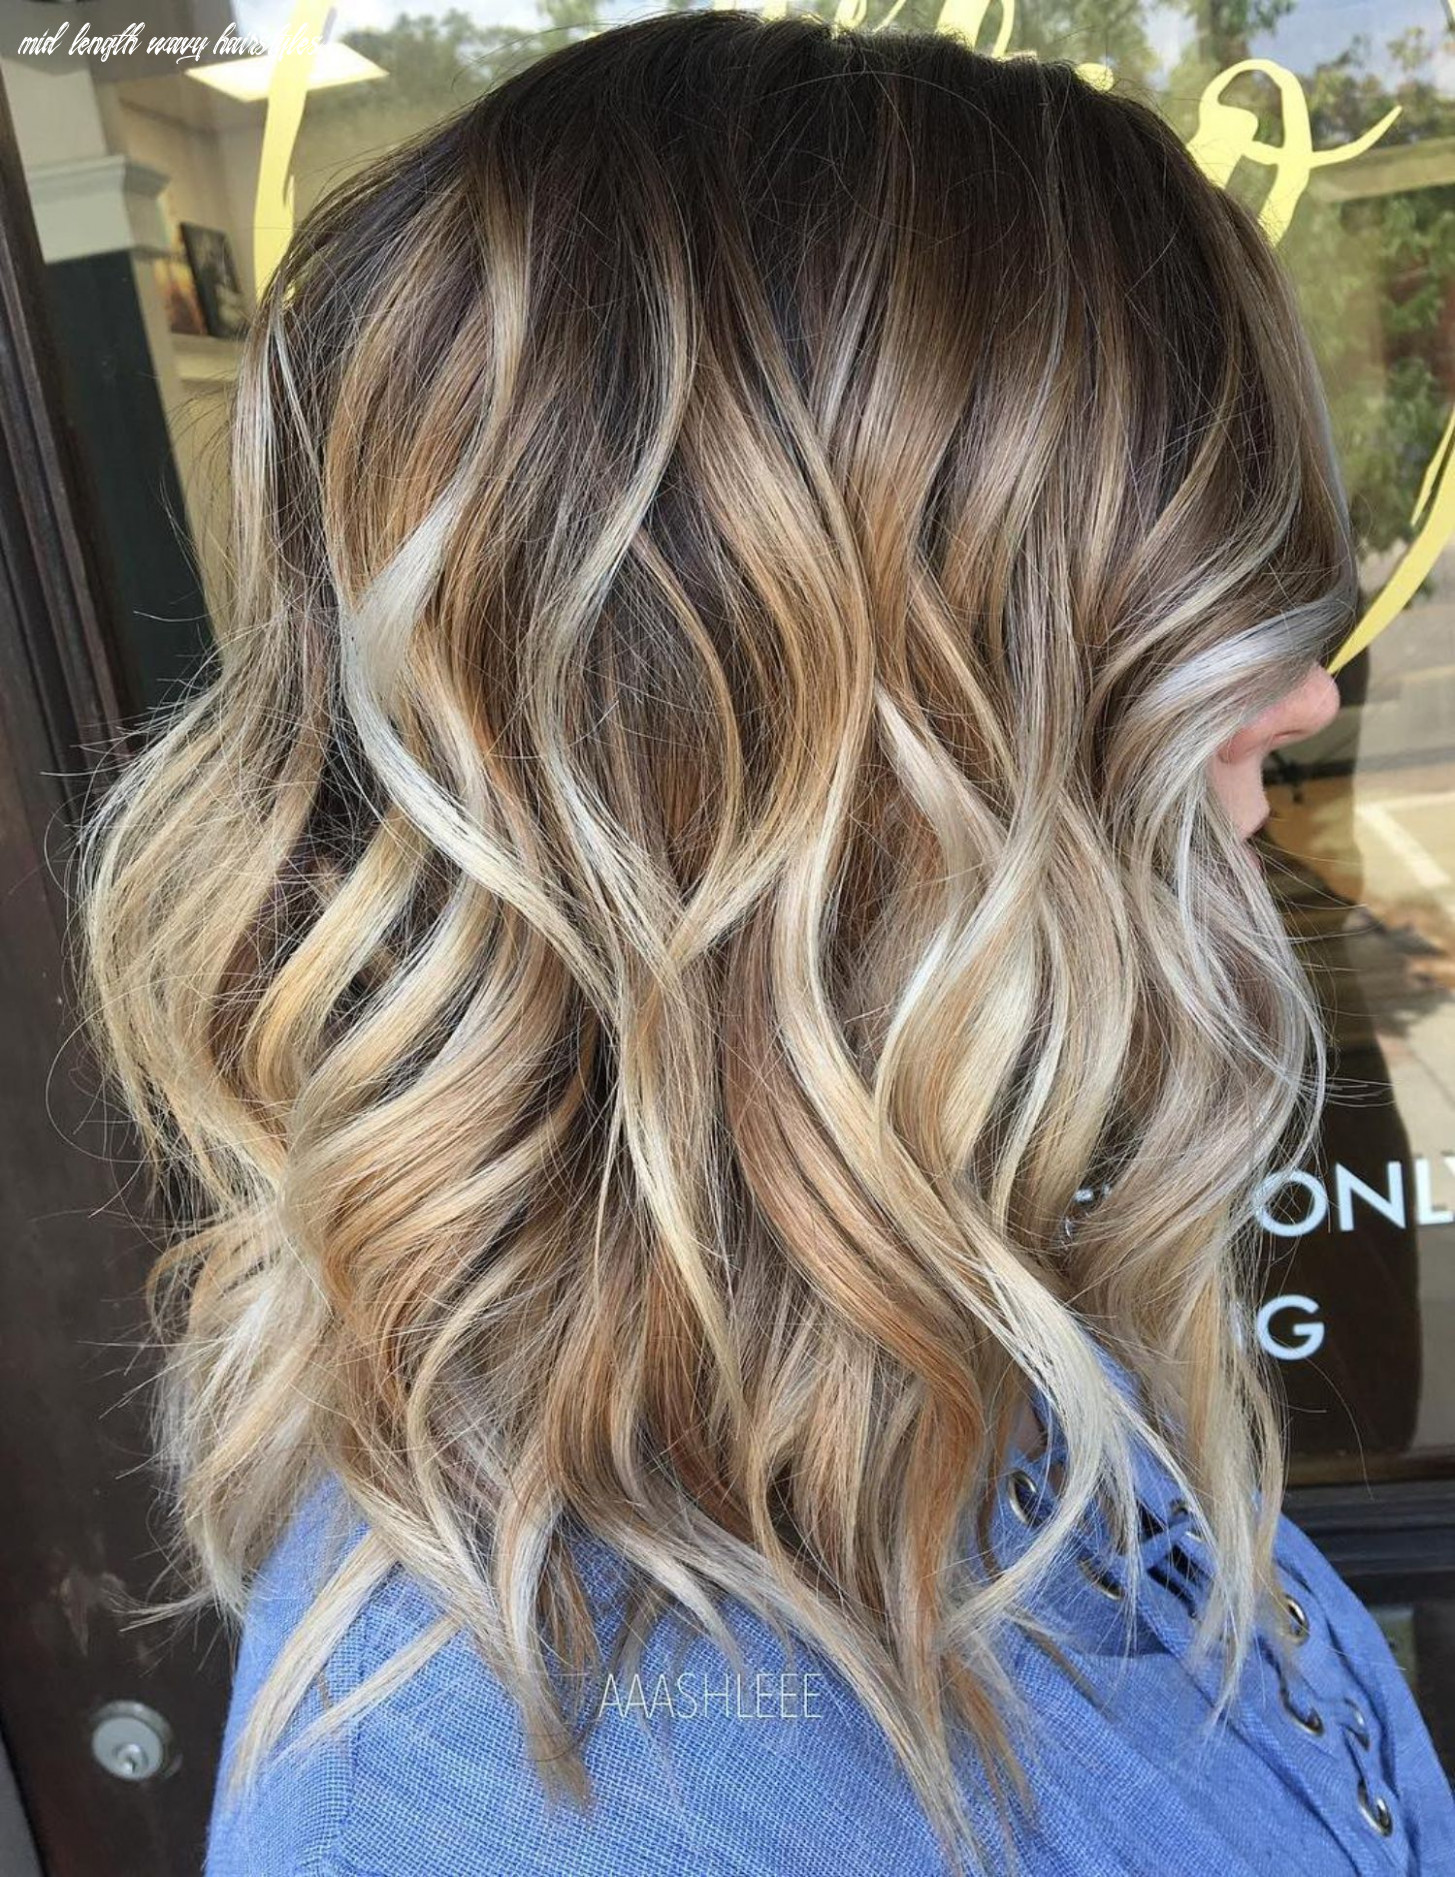 Pin on my style mid length wavy hairstyles